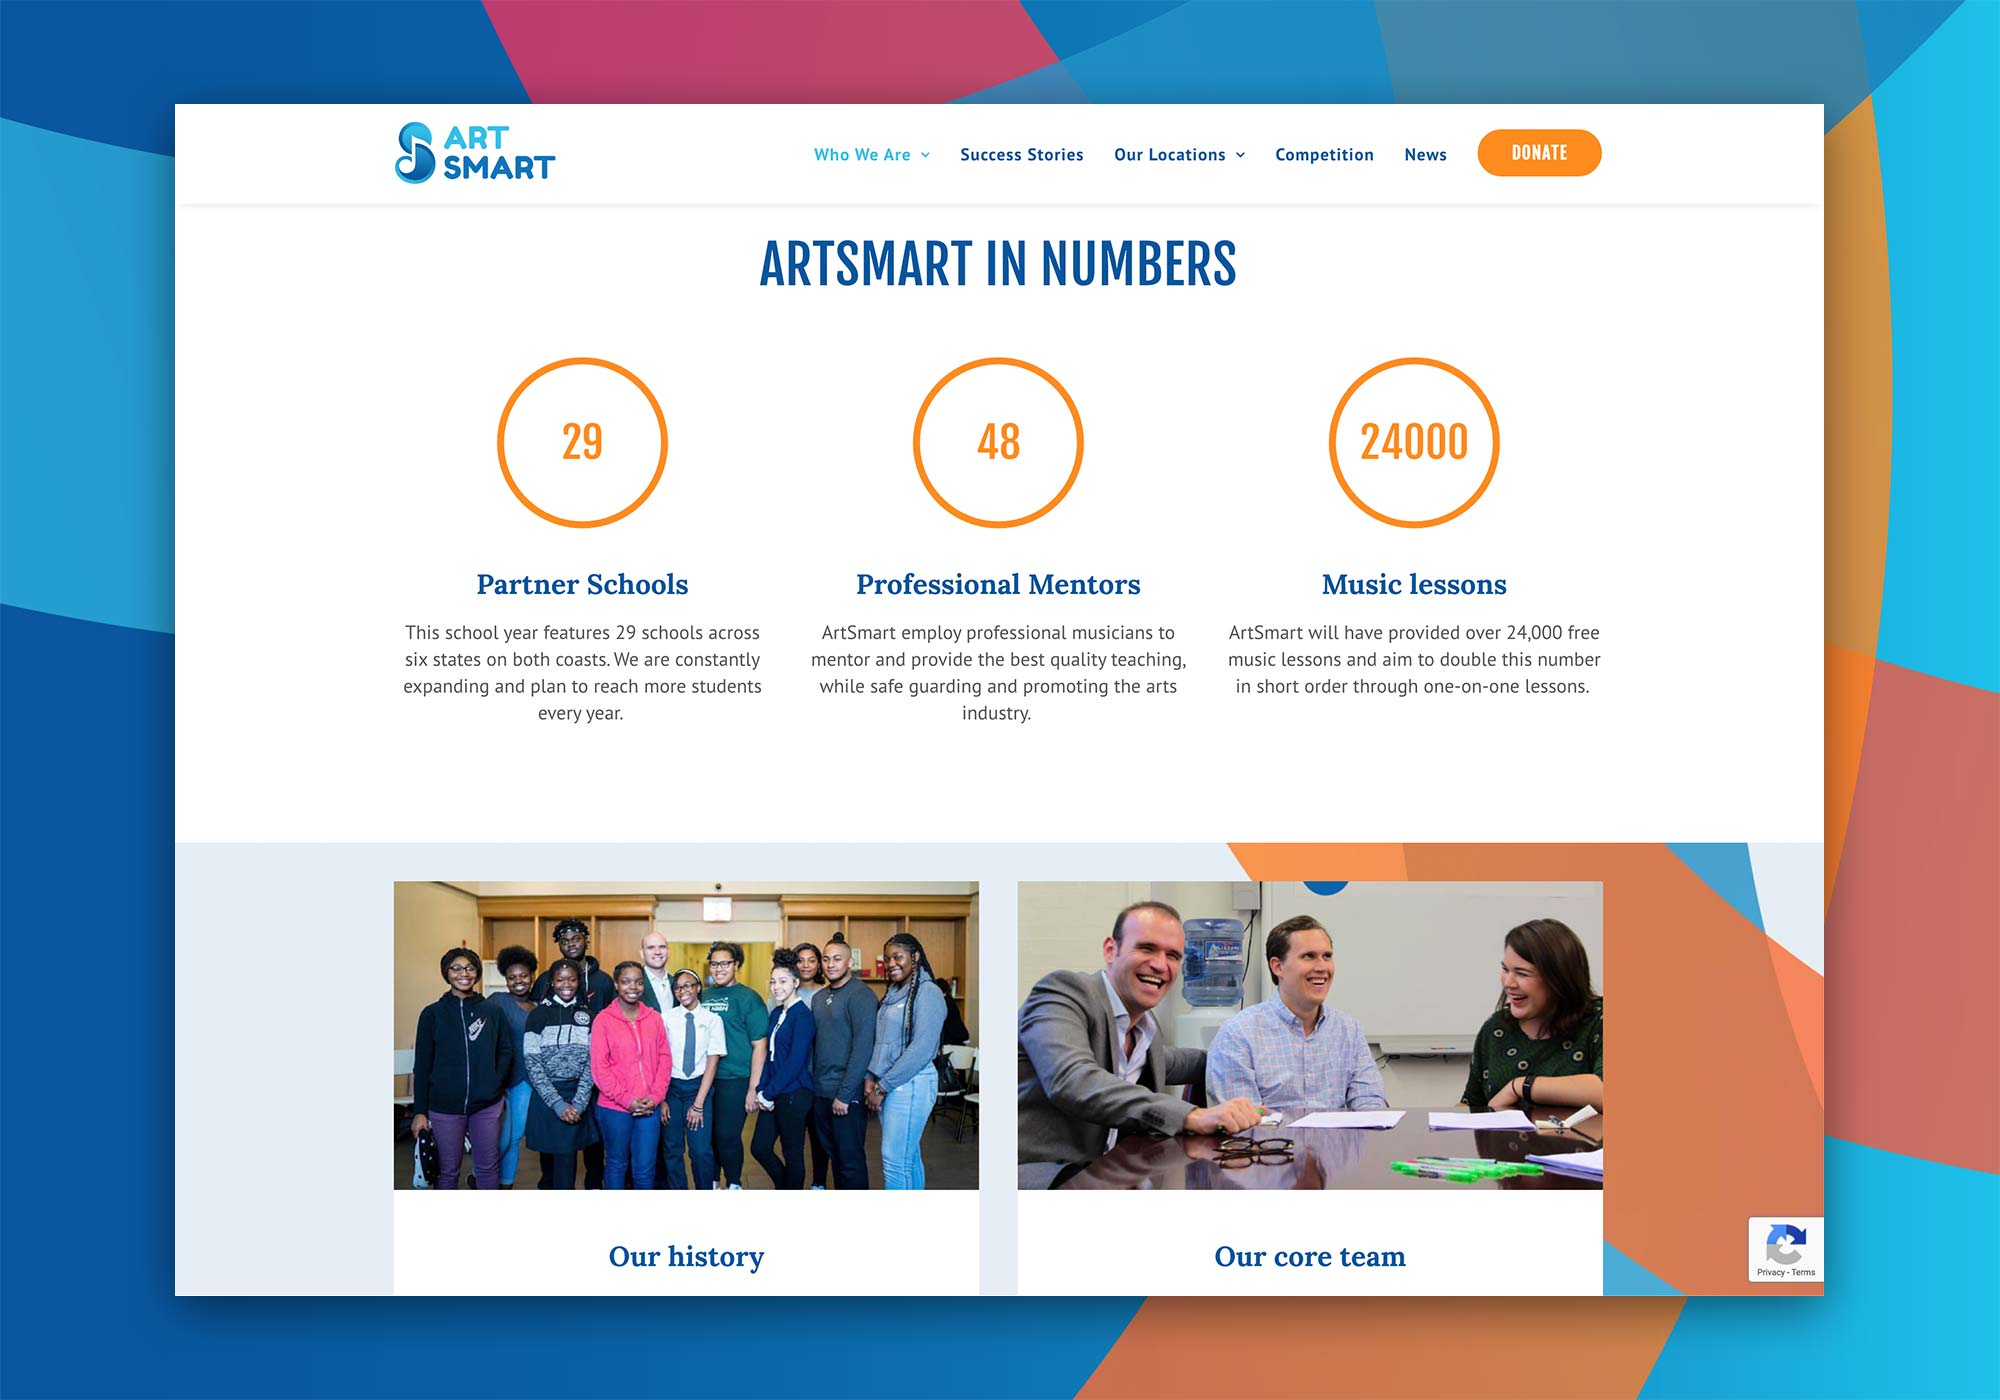 ArtSmart music mentoring charity with Michael Fabiano & John Viscardi – Design and website by Marshall Light Studio